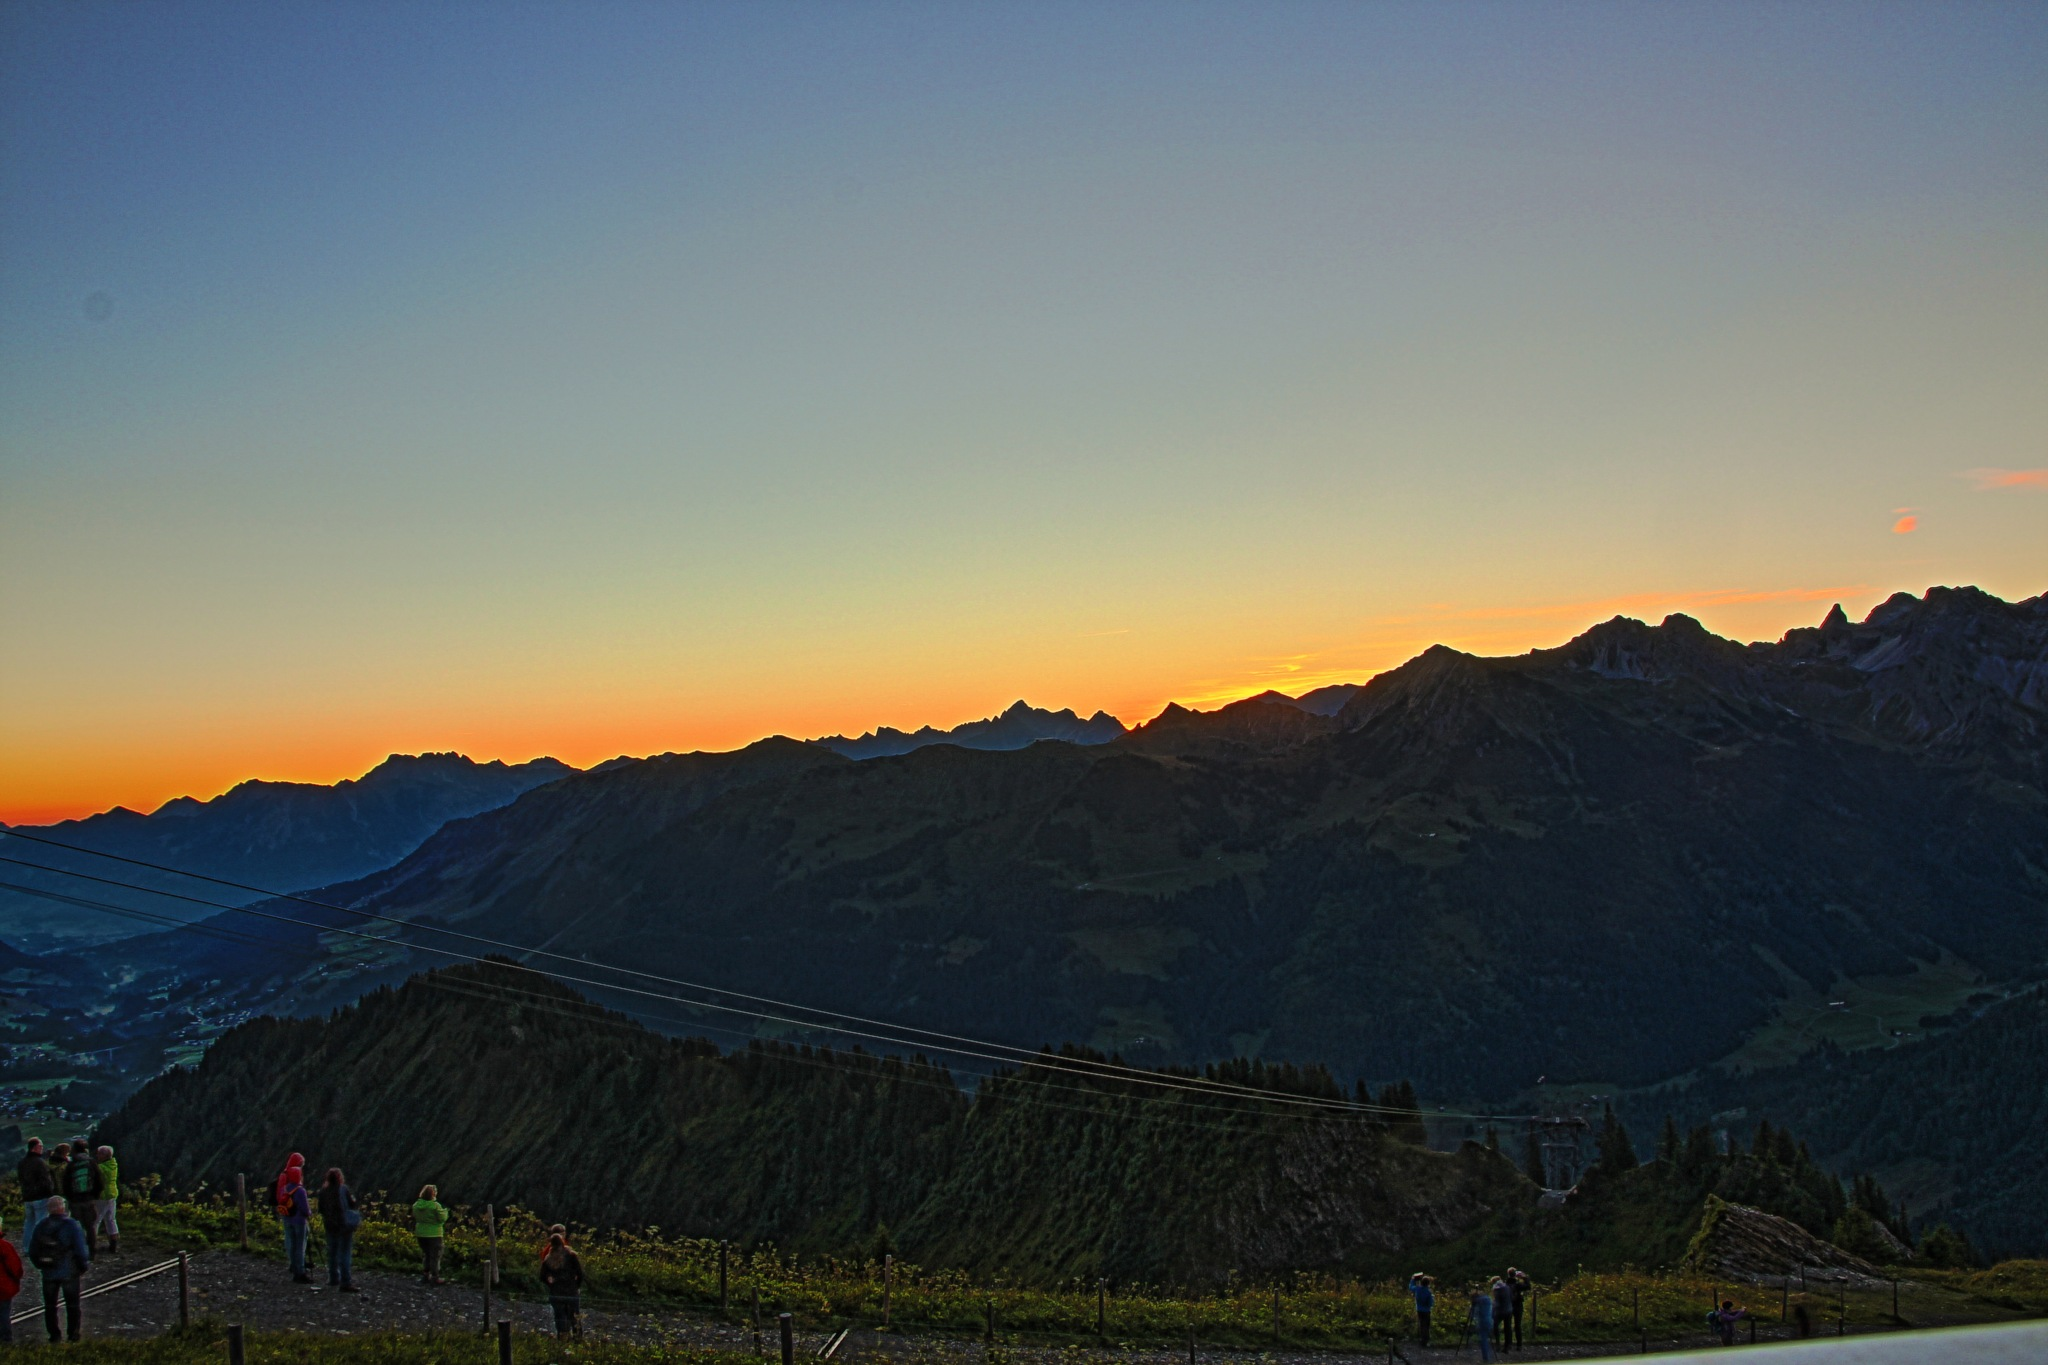 sunrise at Walmendingerhorn by helen.vandenbroek.9